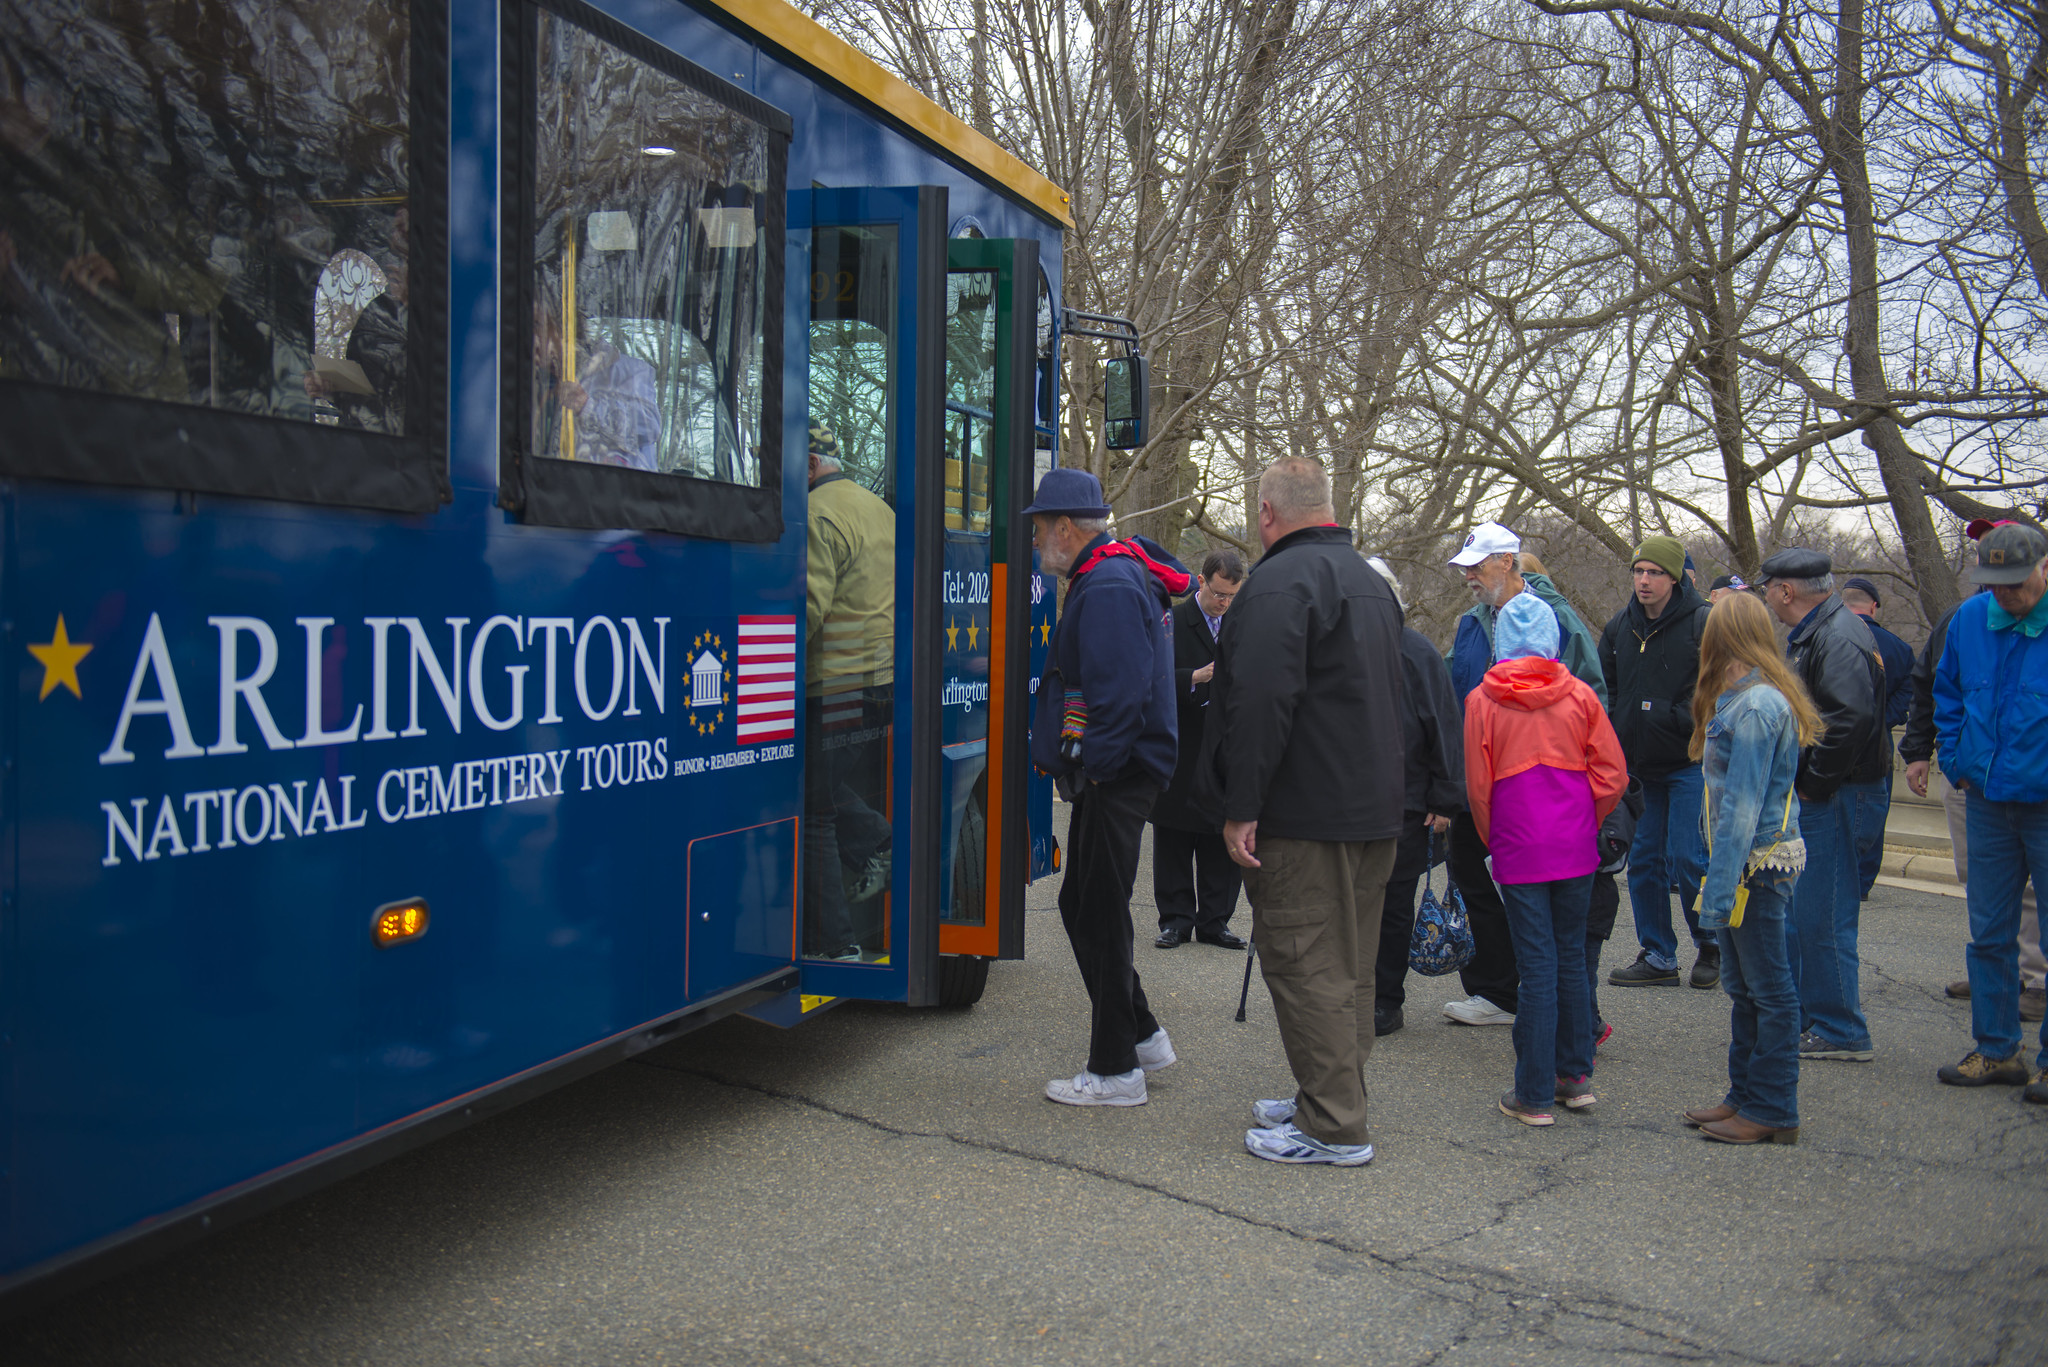 Visitors to Arlington National Cemetery board a tour bus